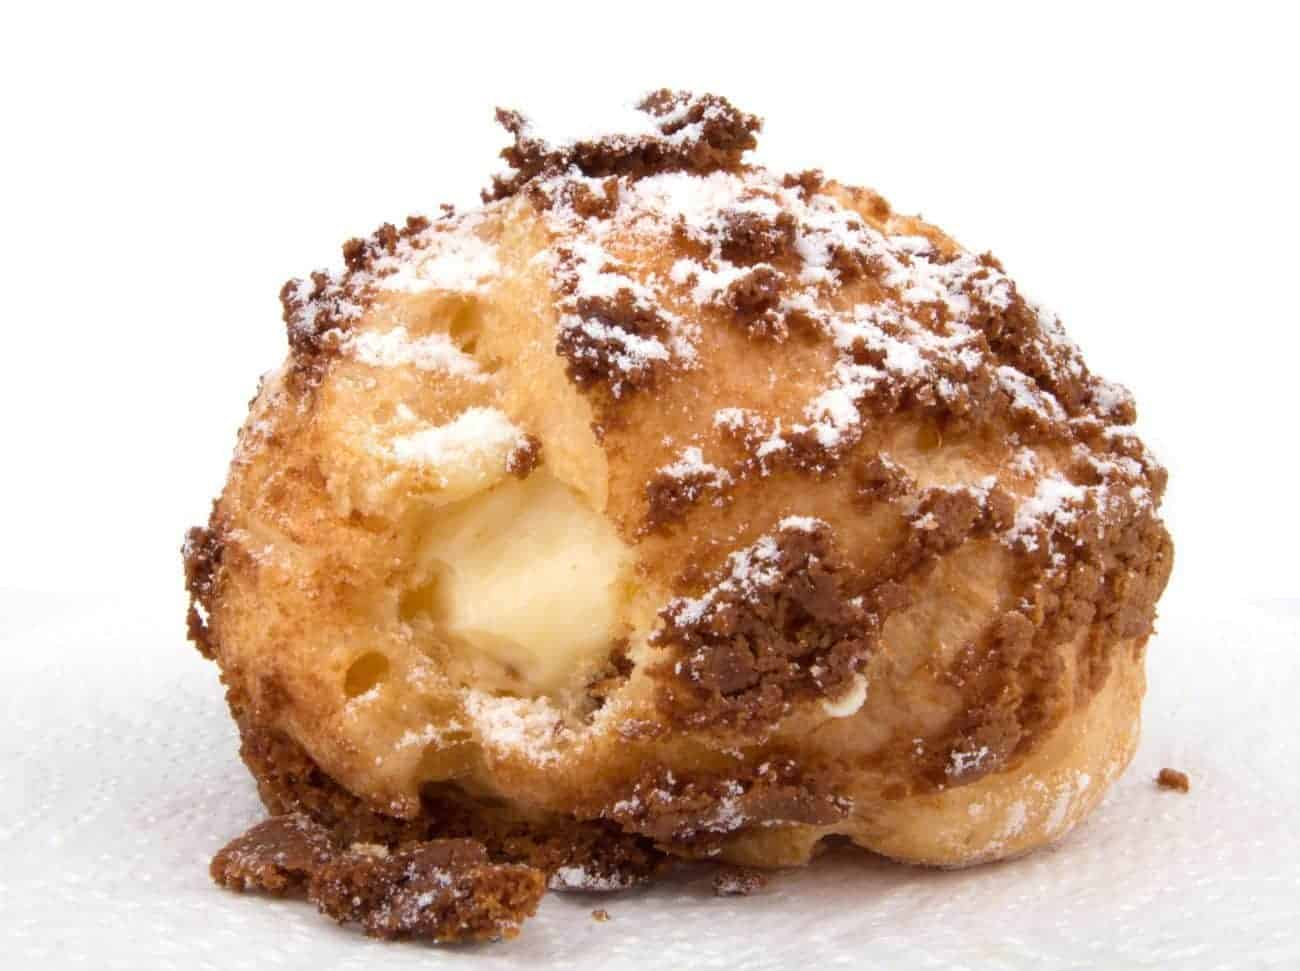 Image of the traditional Choux Pastry Puff on Biancolievito